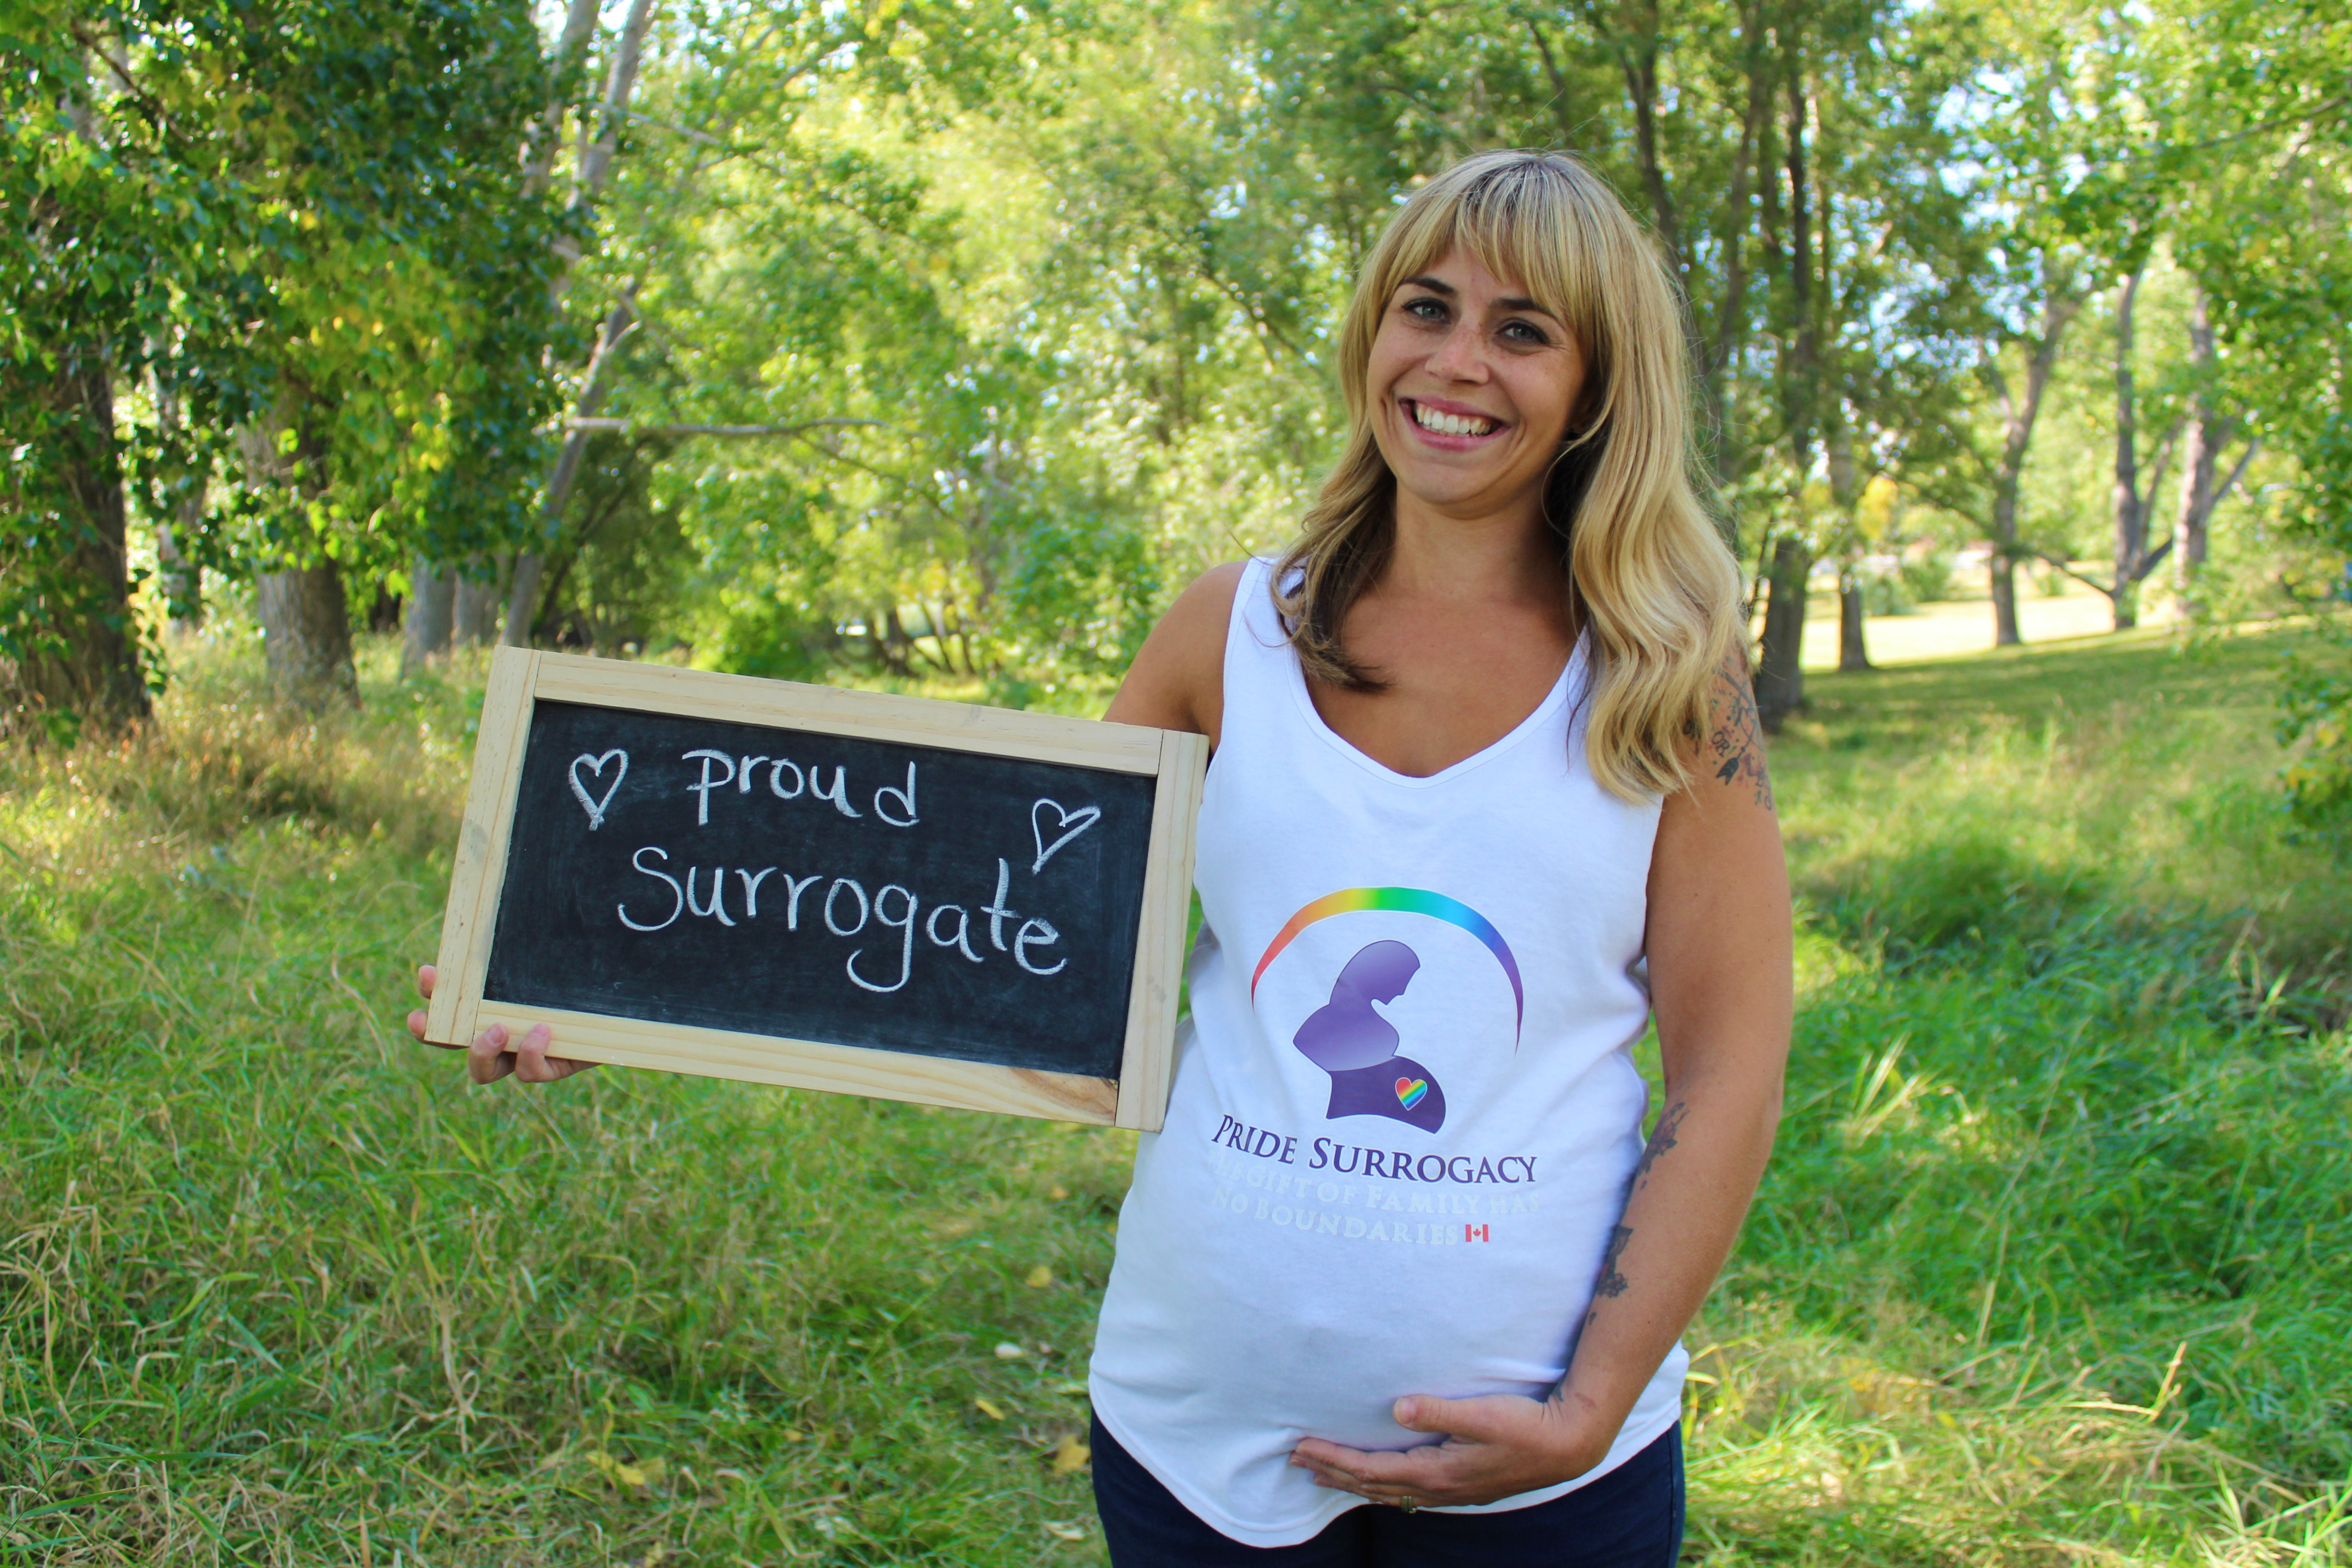 Pride Surrogacy - Gay Surrogacy in Canada - proud surrogate mother